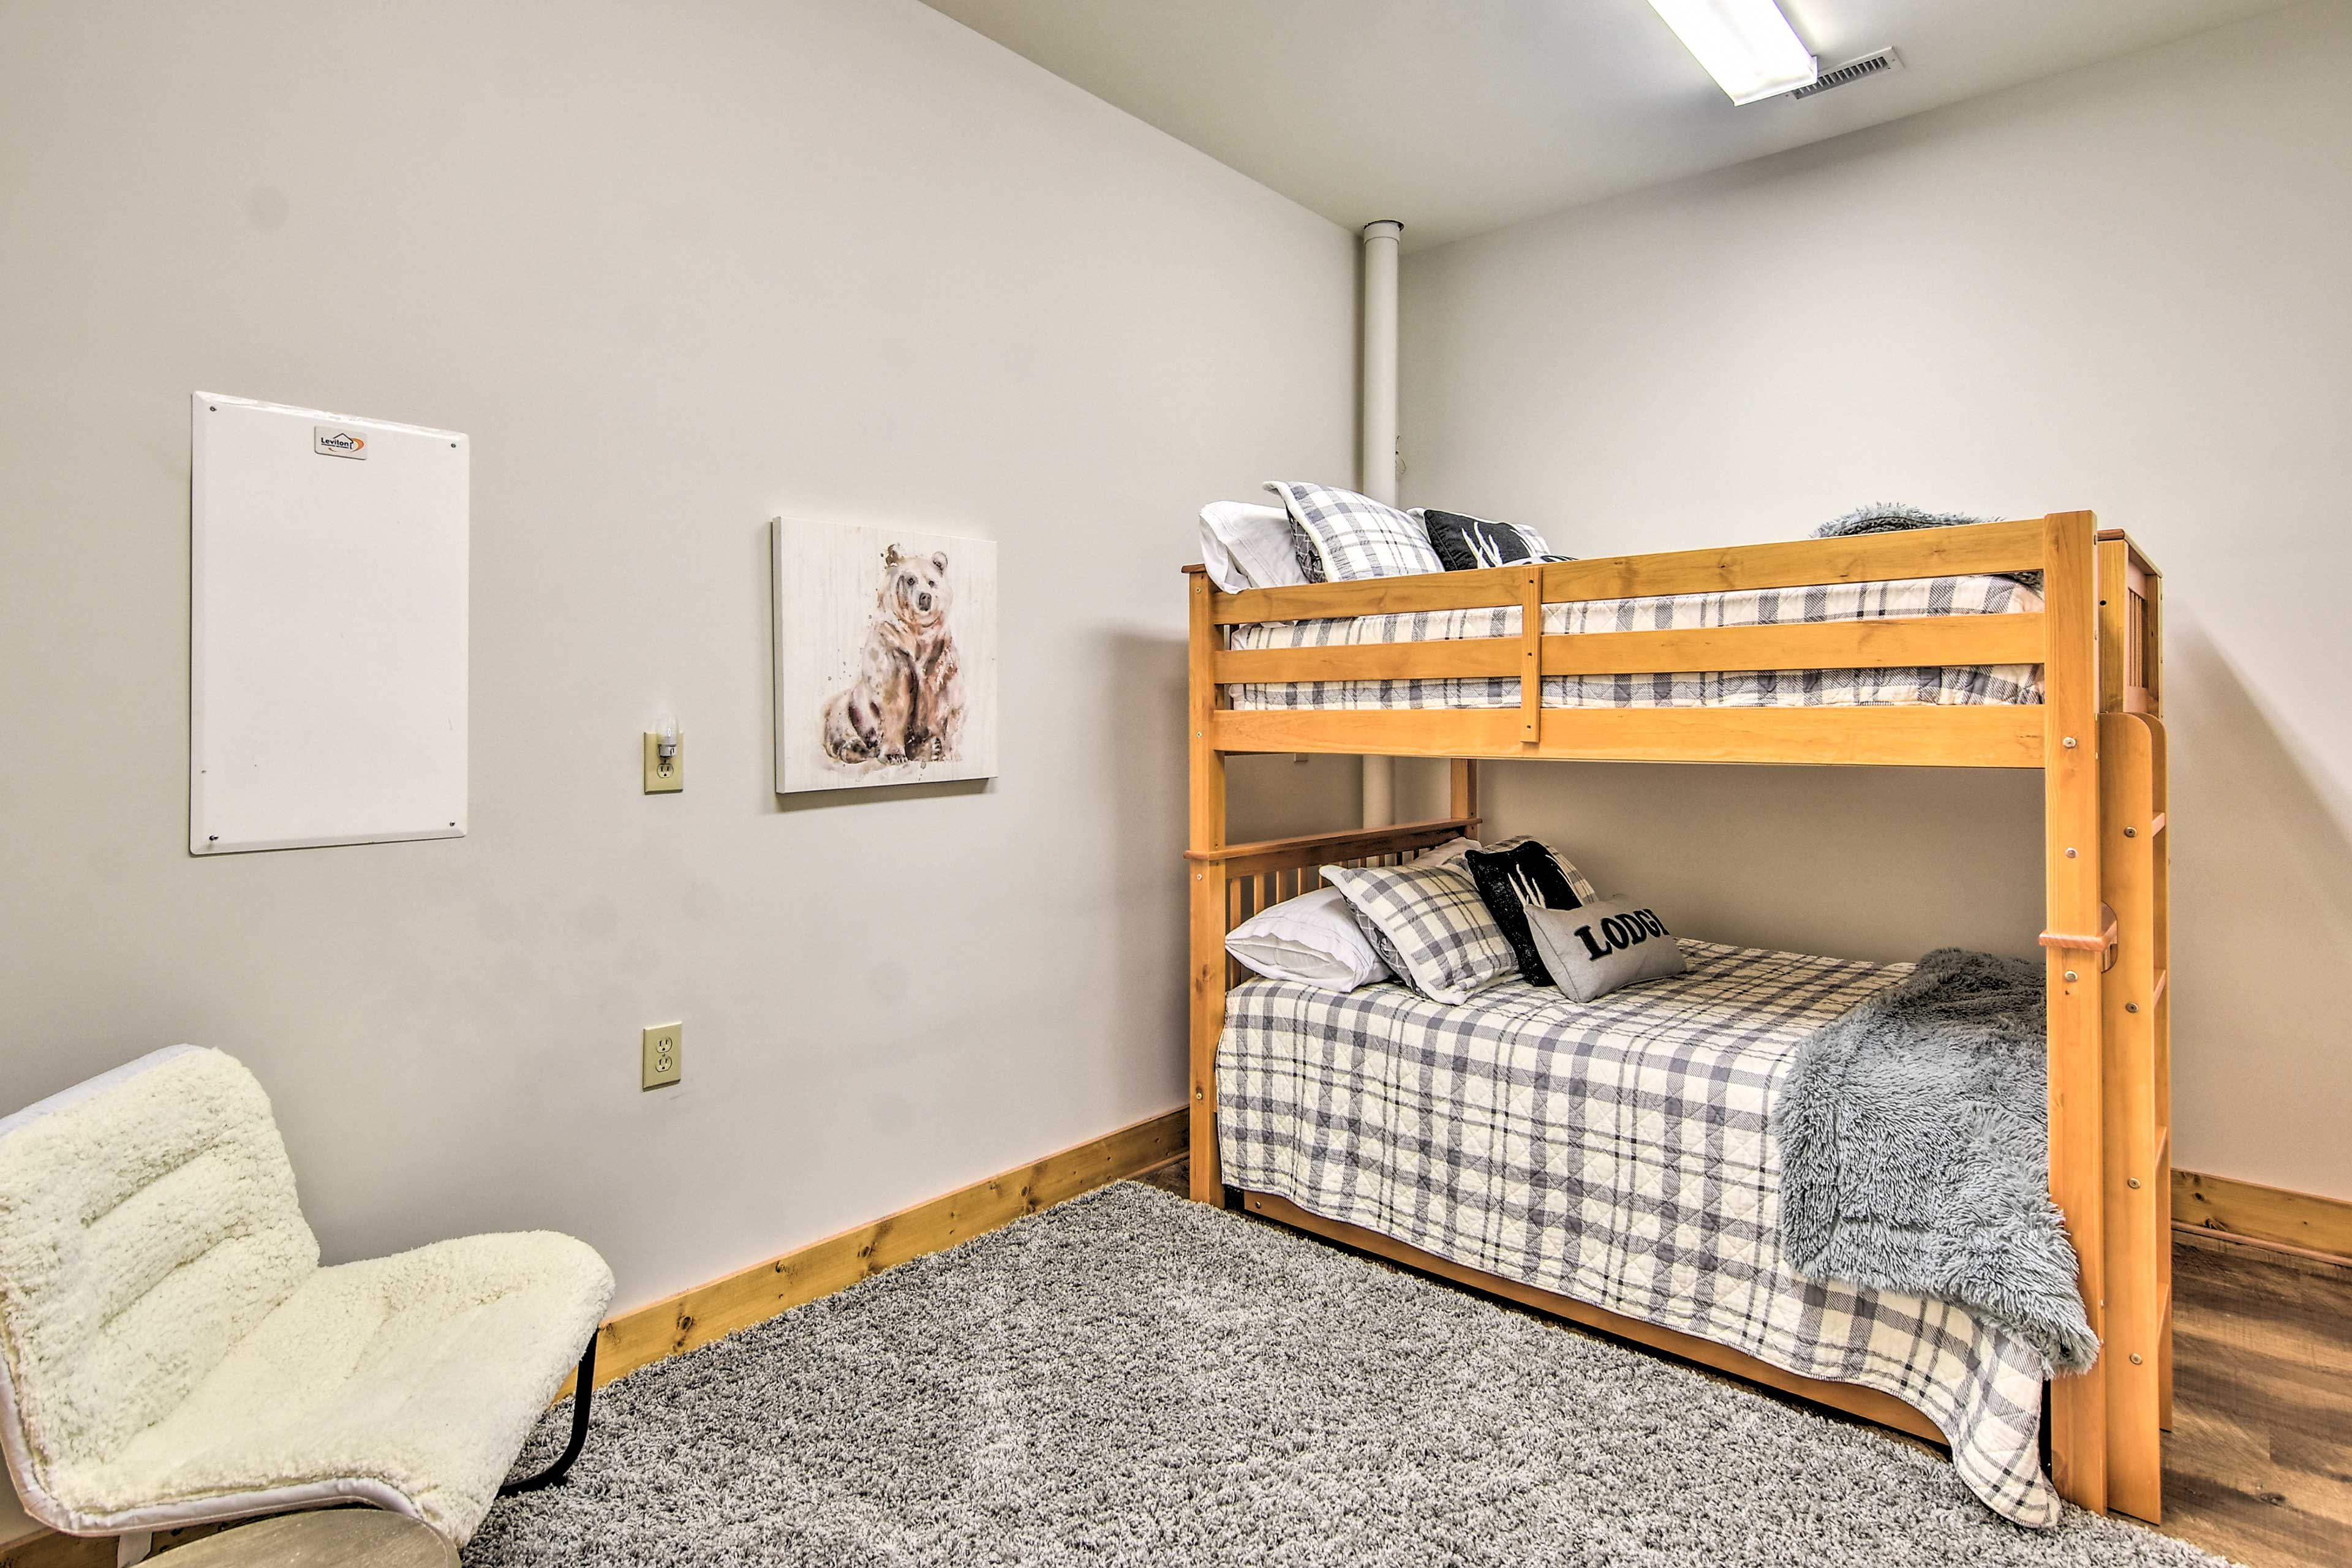 Kids will love claiming this full-sized bunk bed as their own!